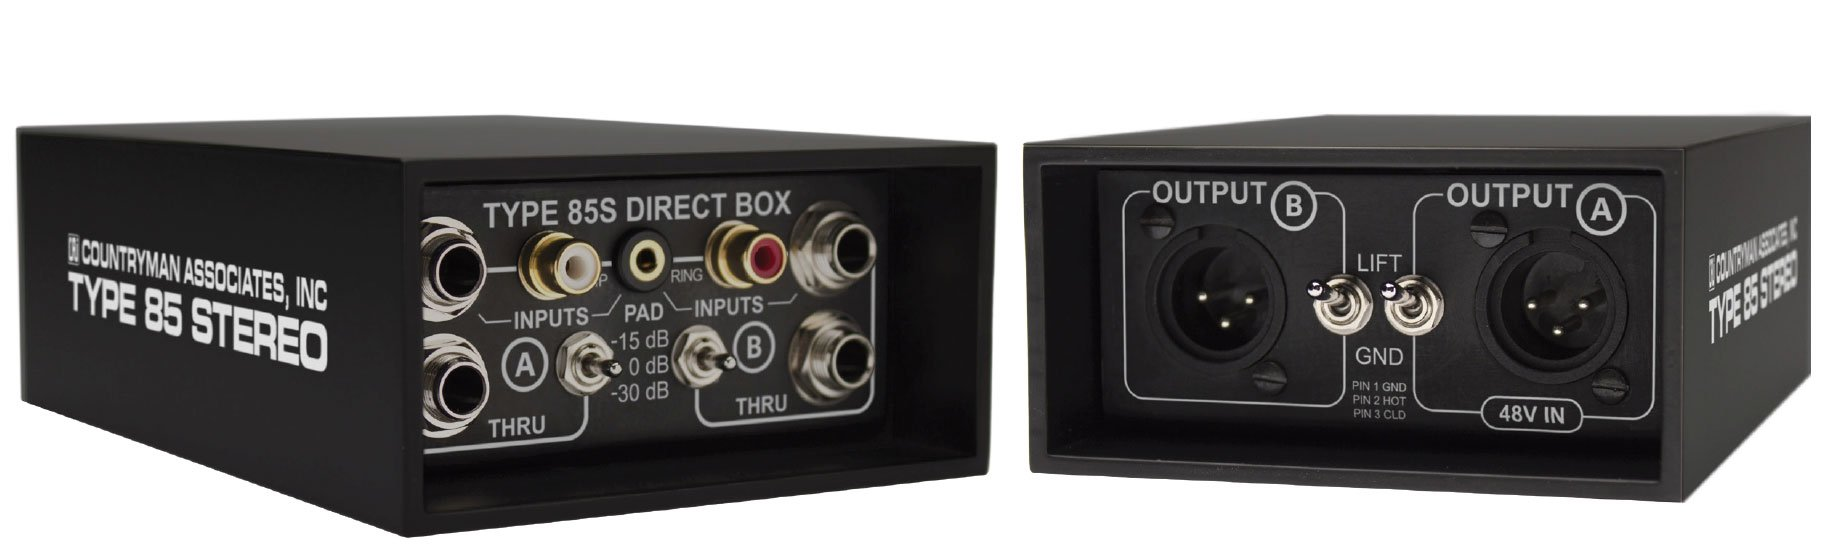 Type 85S 2-Channel FET Direct Box